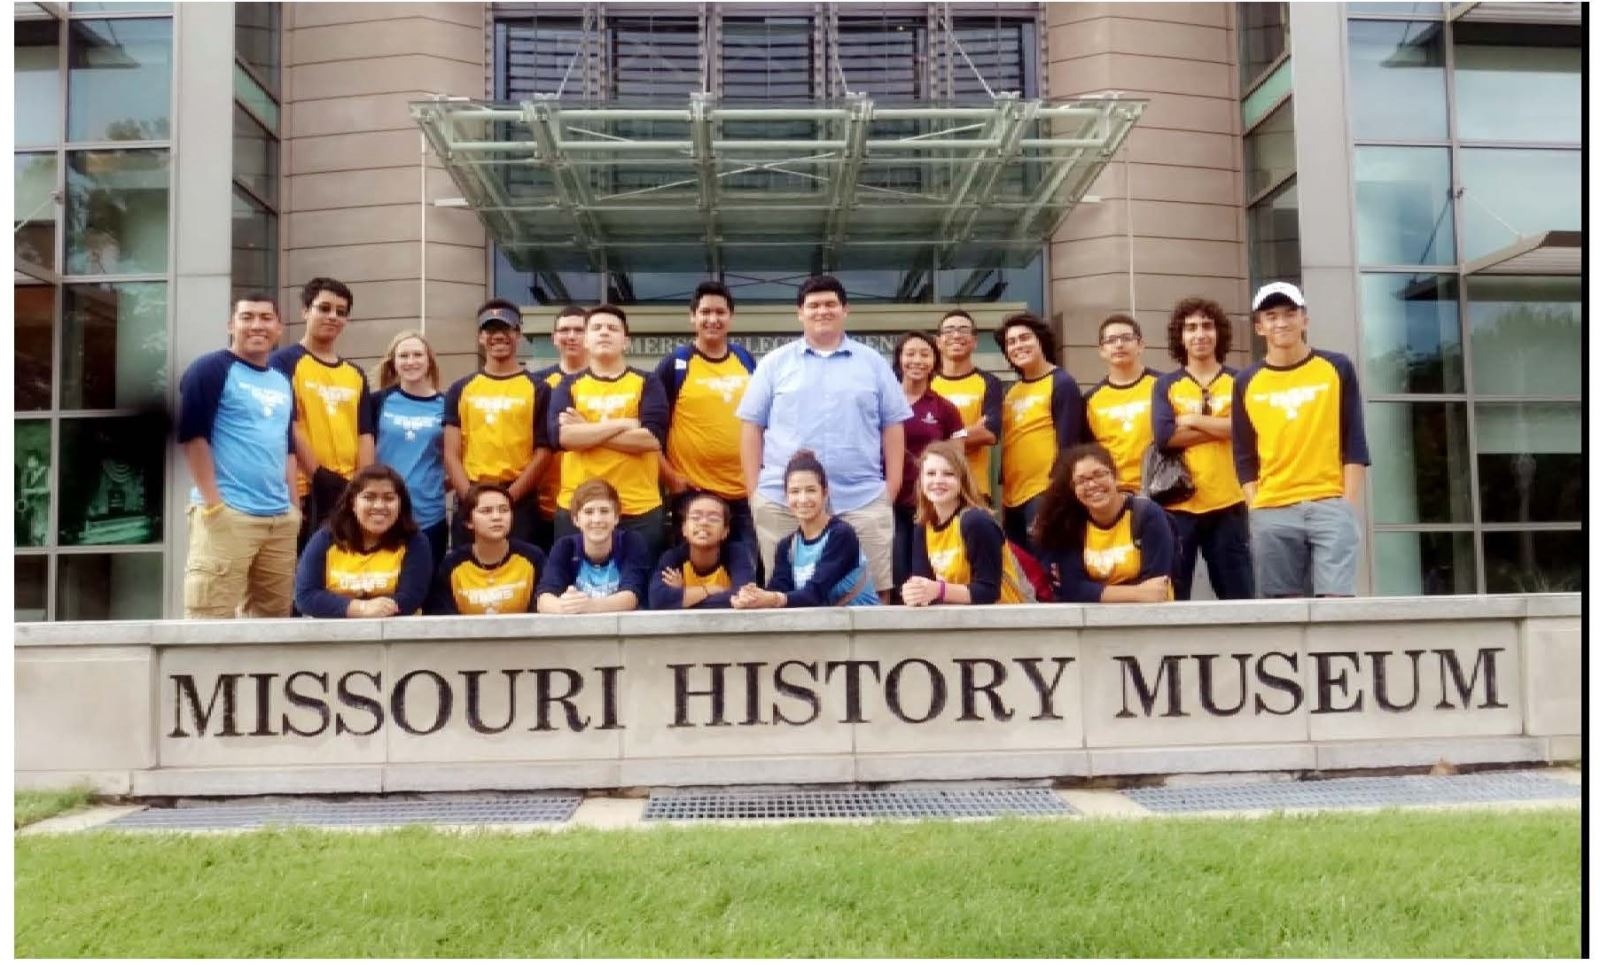 Students at Missouri History Museum